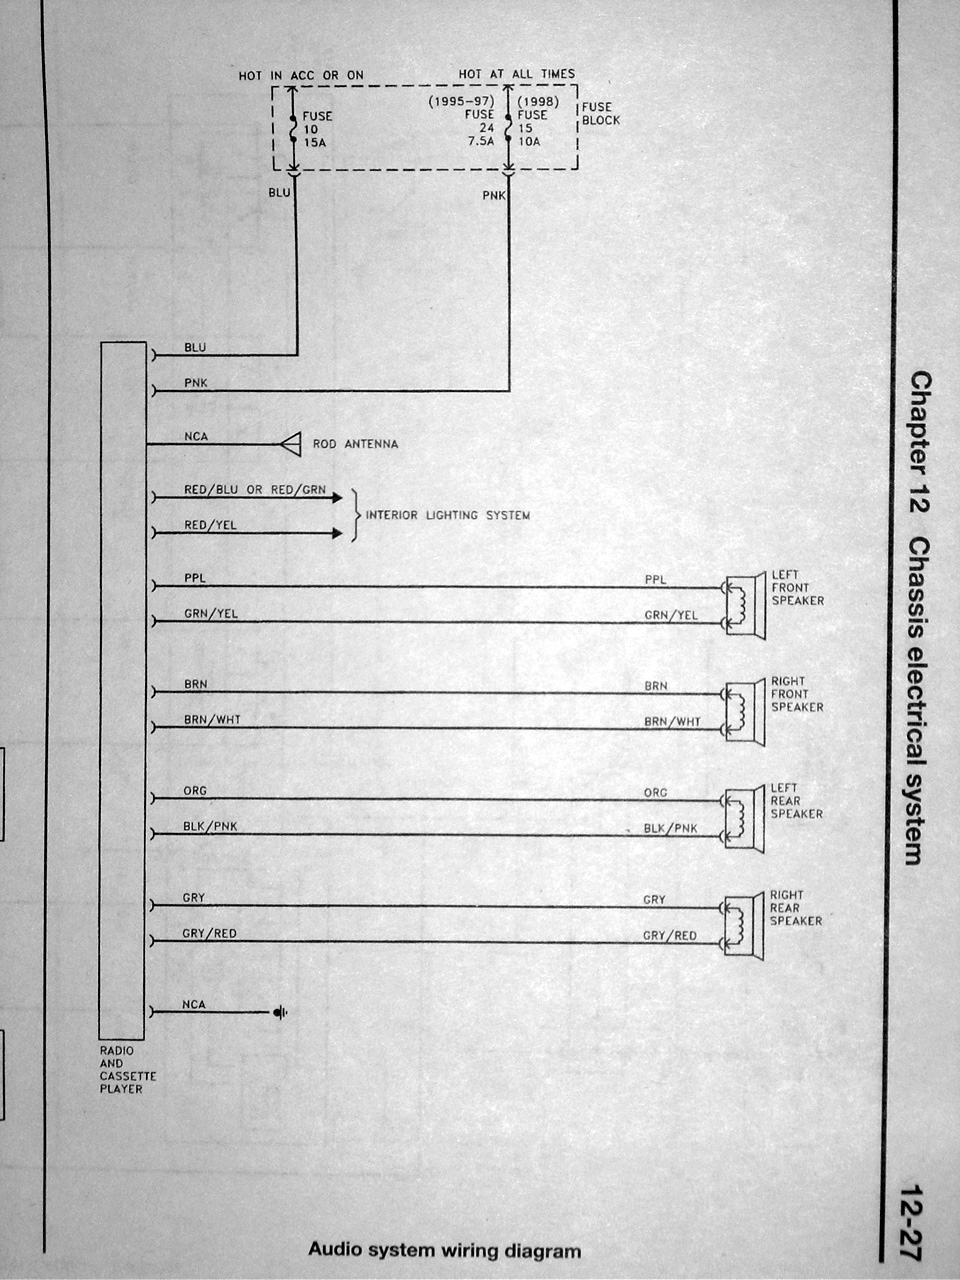 DSC01849 wiring diagram thread *useful info* nissan forum 1995 Nissan Pathfinder Belt Diagram at reclaimingppi.co